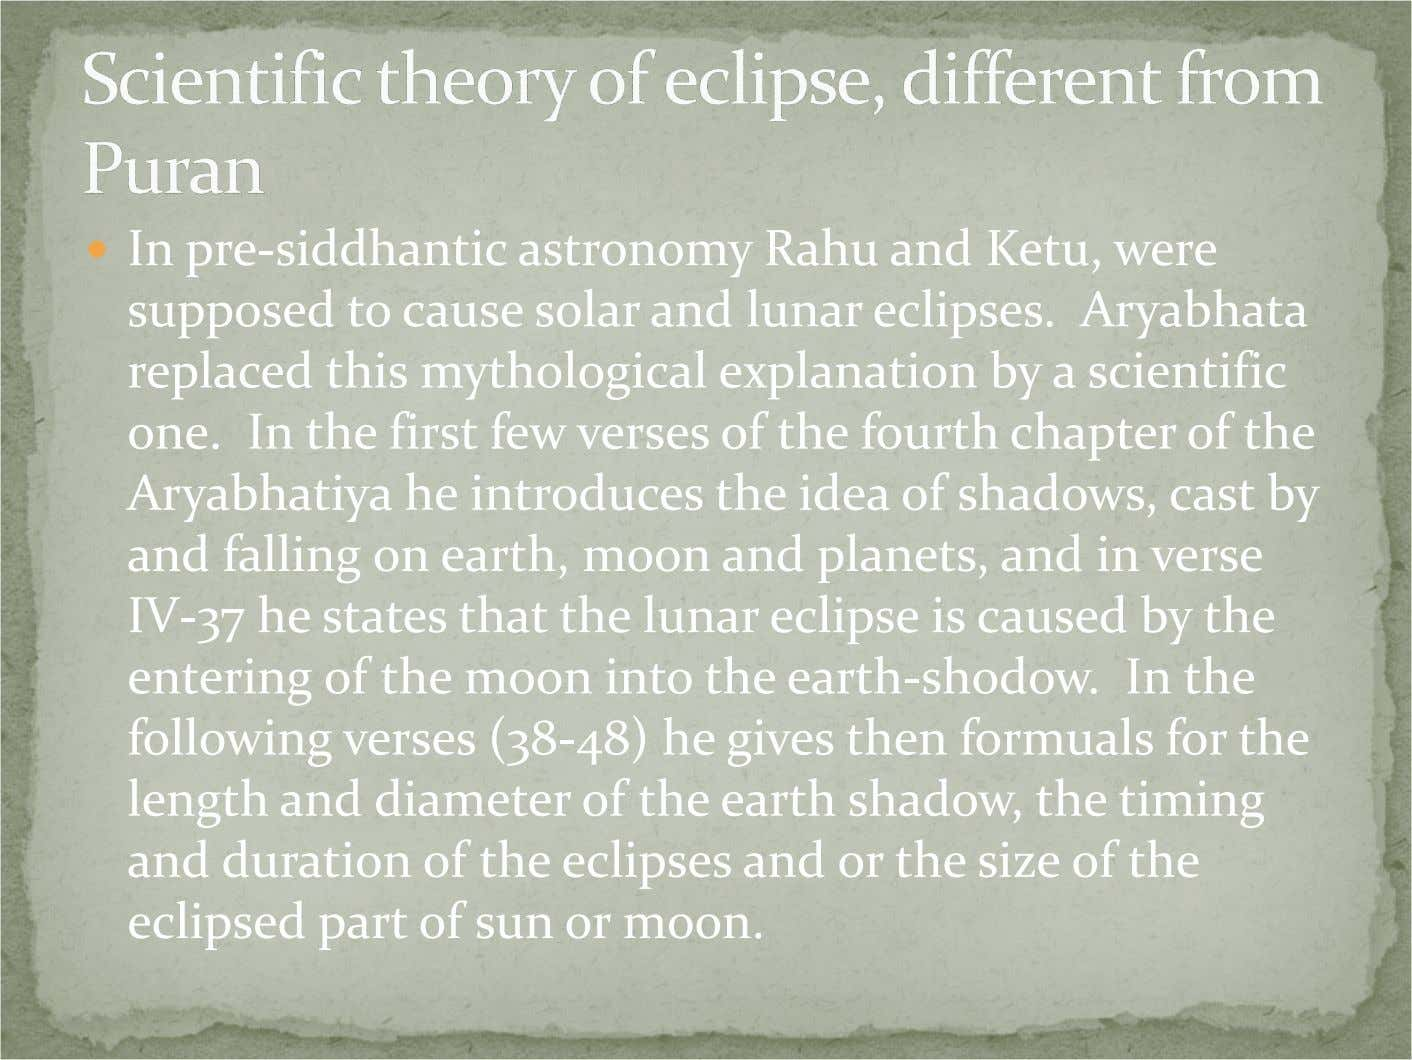 In pre-siddhantic astronomy Rahu and Ketu, were supposed to cause solar and lunar eclipses. Aryabhata